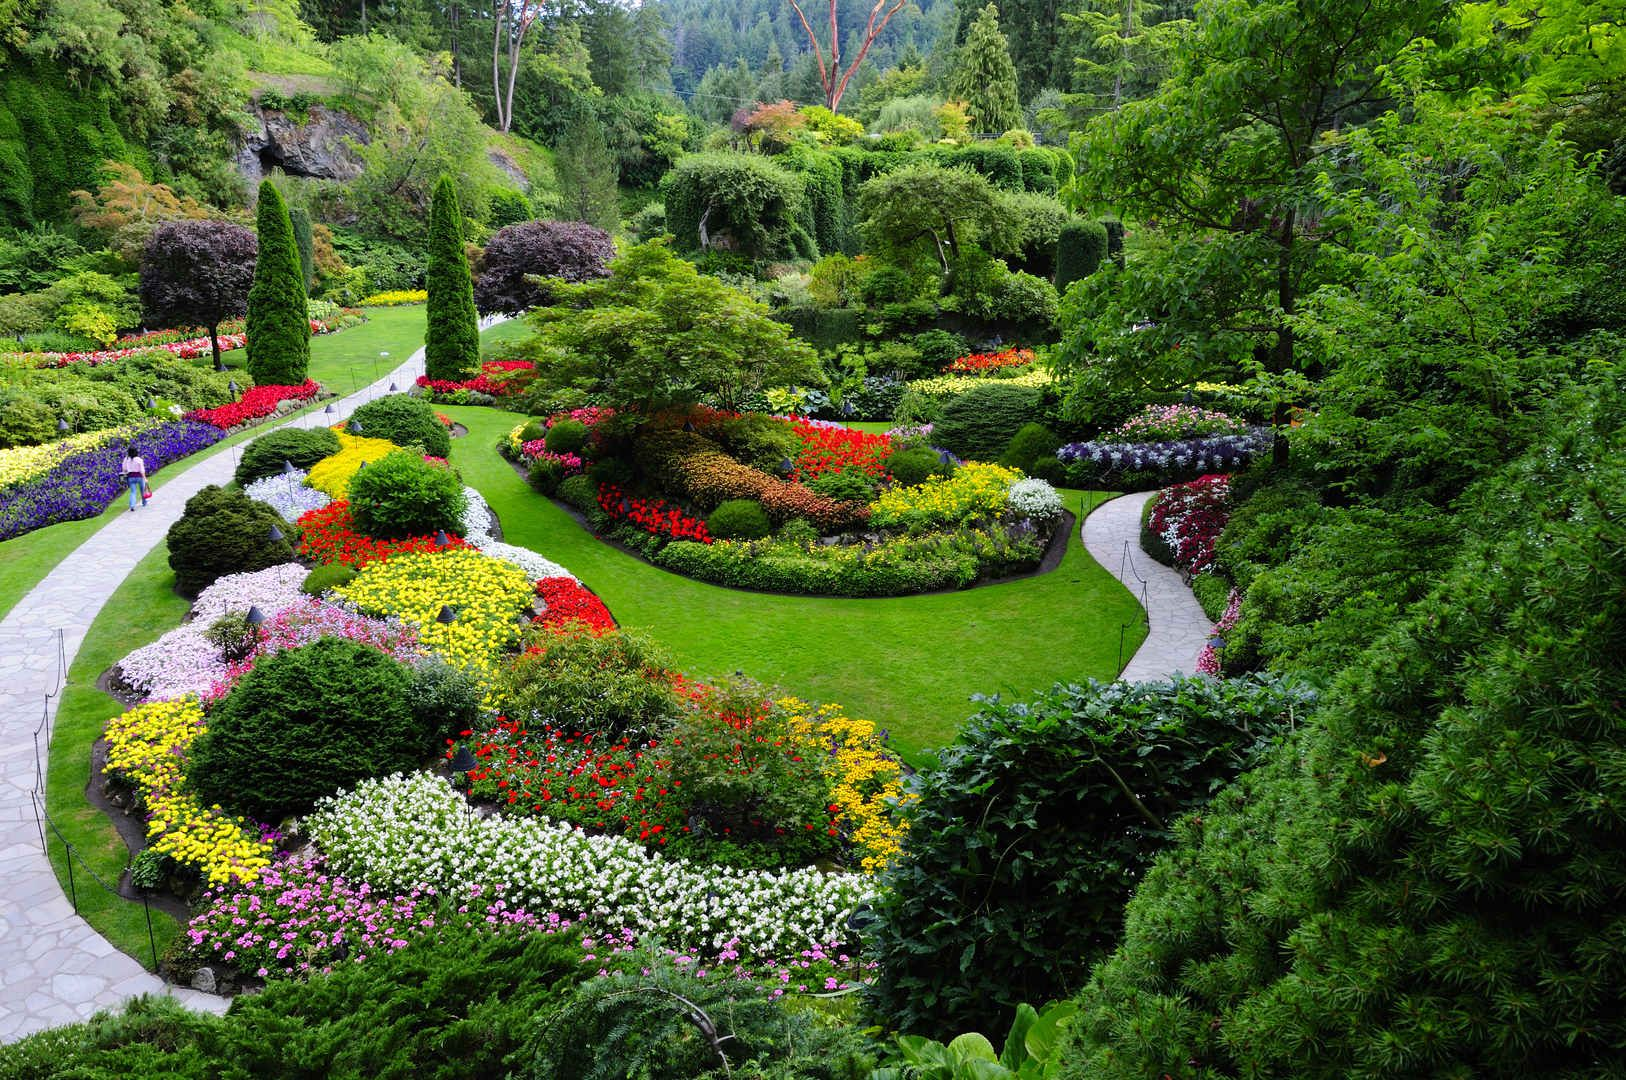 f9bdd0e8530b543d600f9e3e1eb2abbc - How To Get To Butchart Gardens From Downtown Victoria